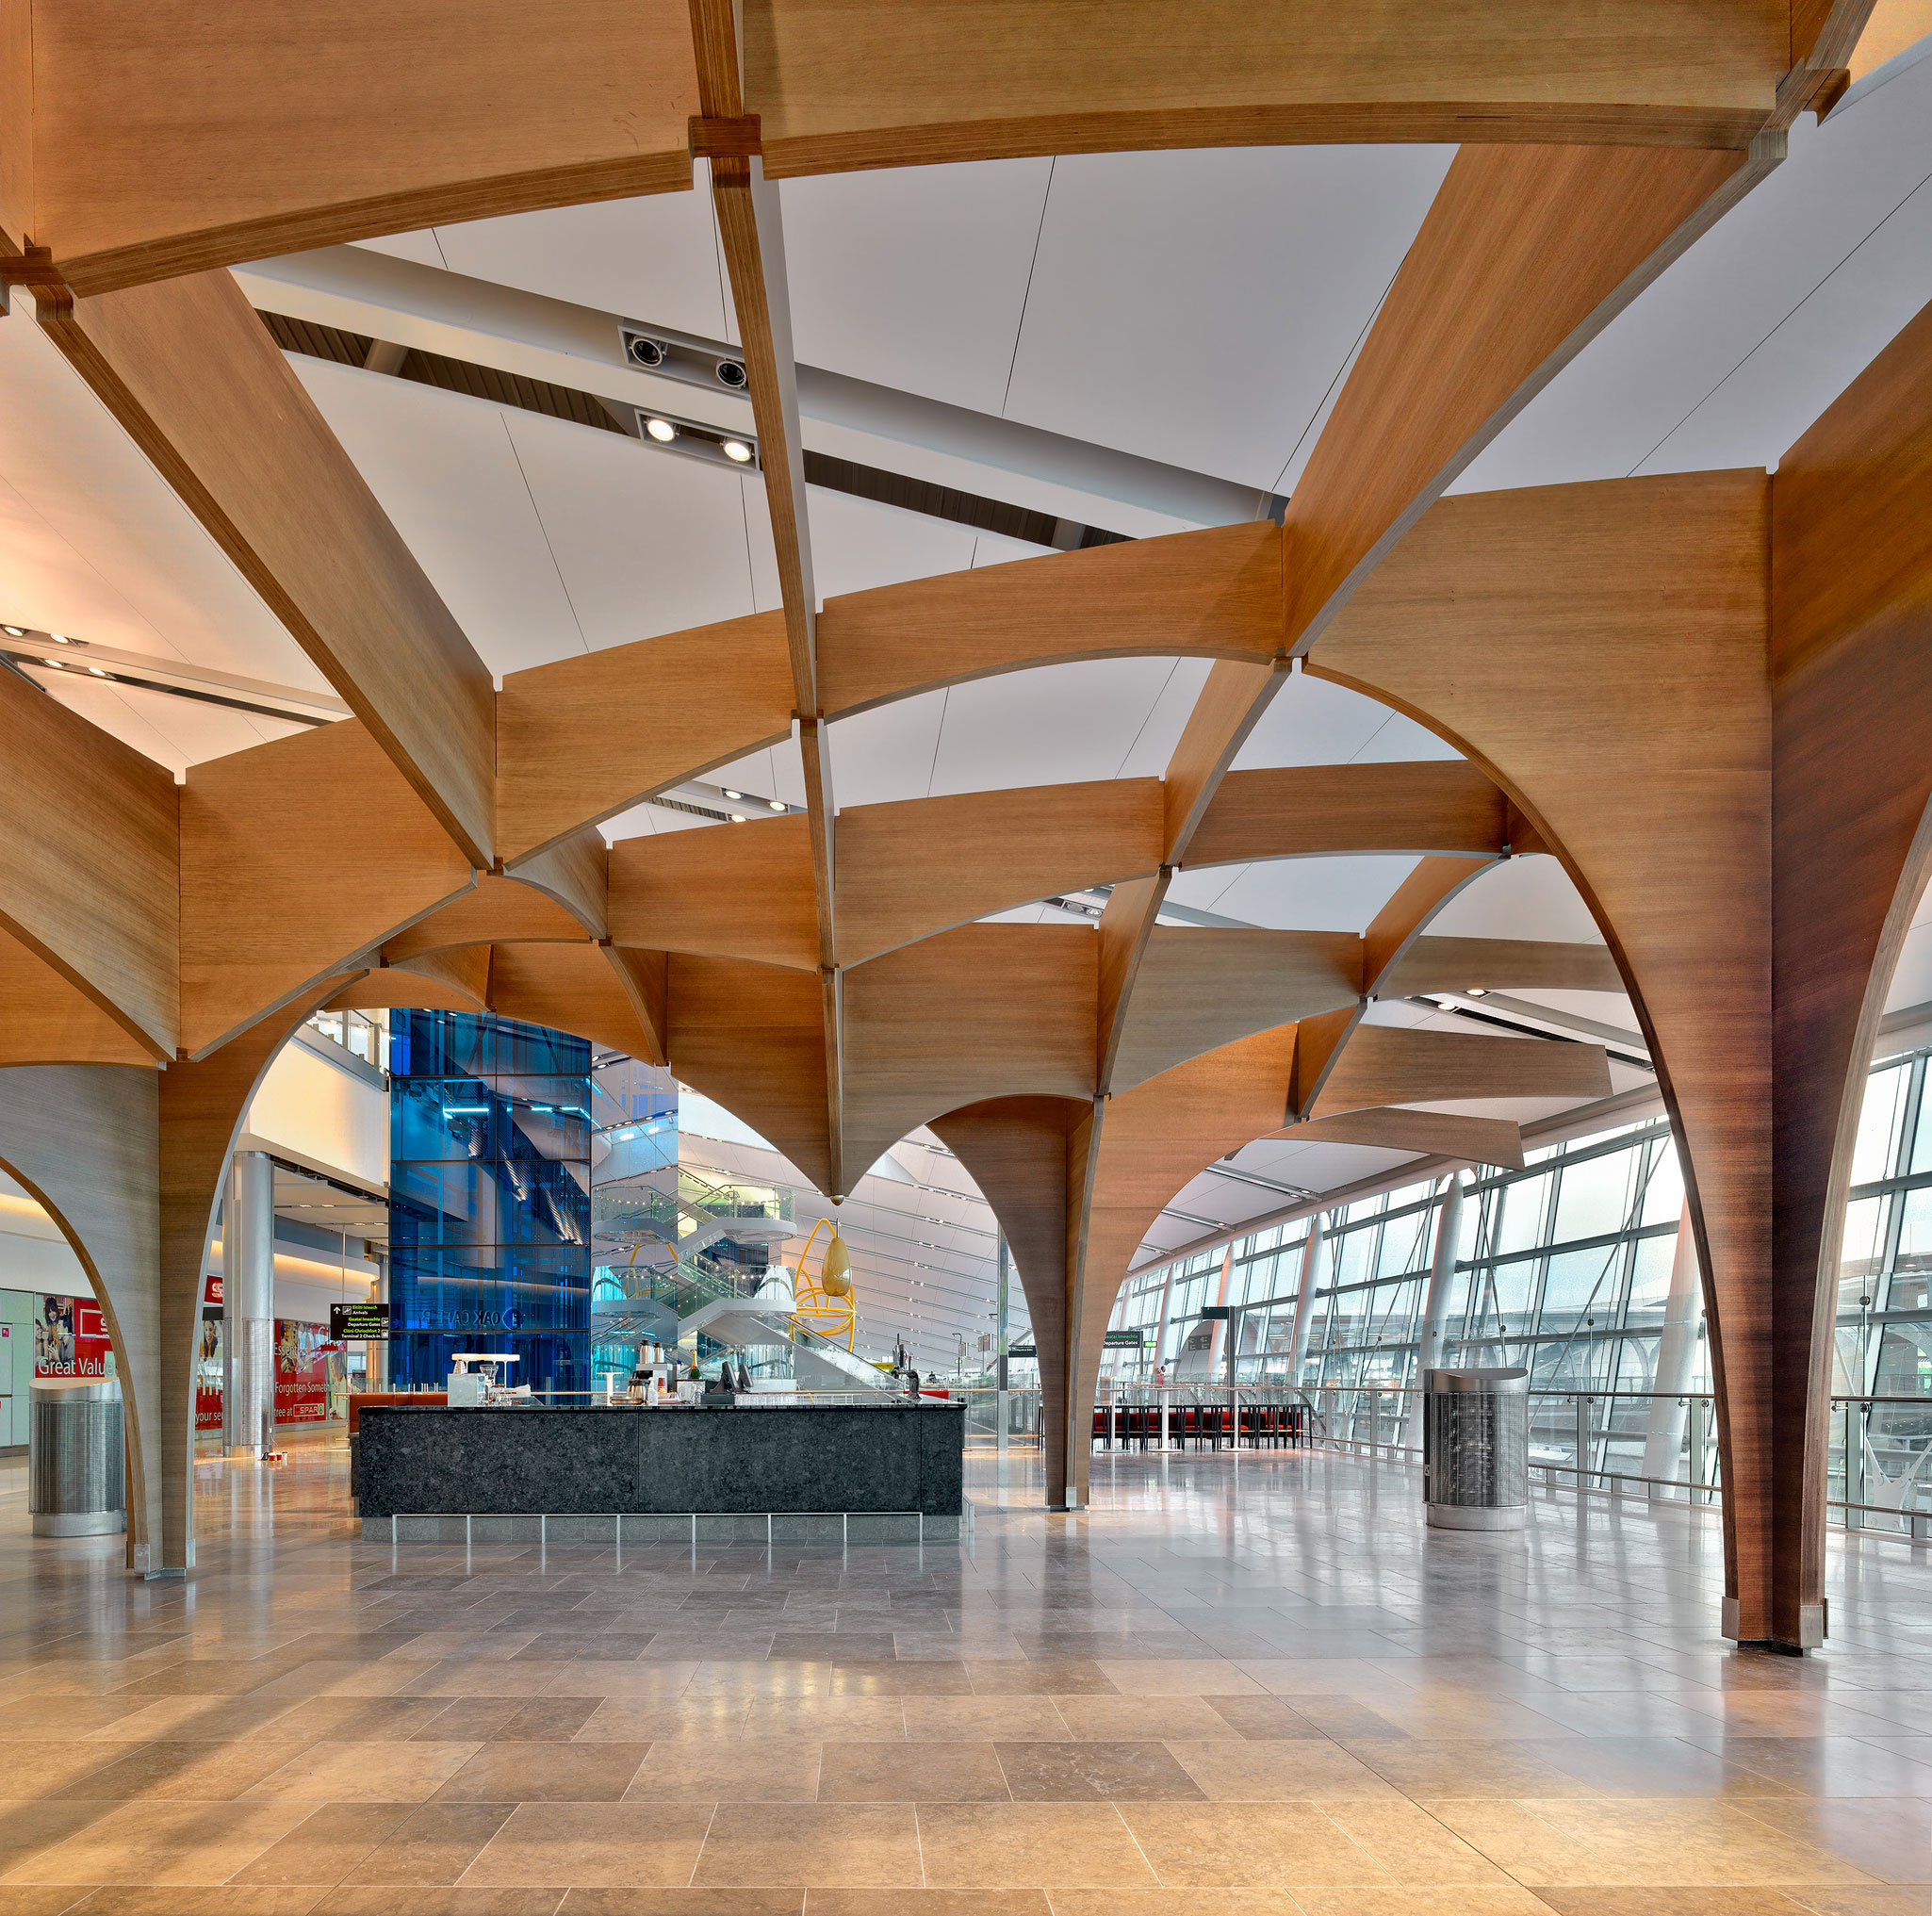 Architectural And Interior Photography: Terminal 2 Dublin Airport Architectural Interiors